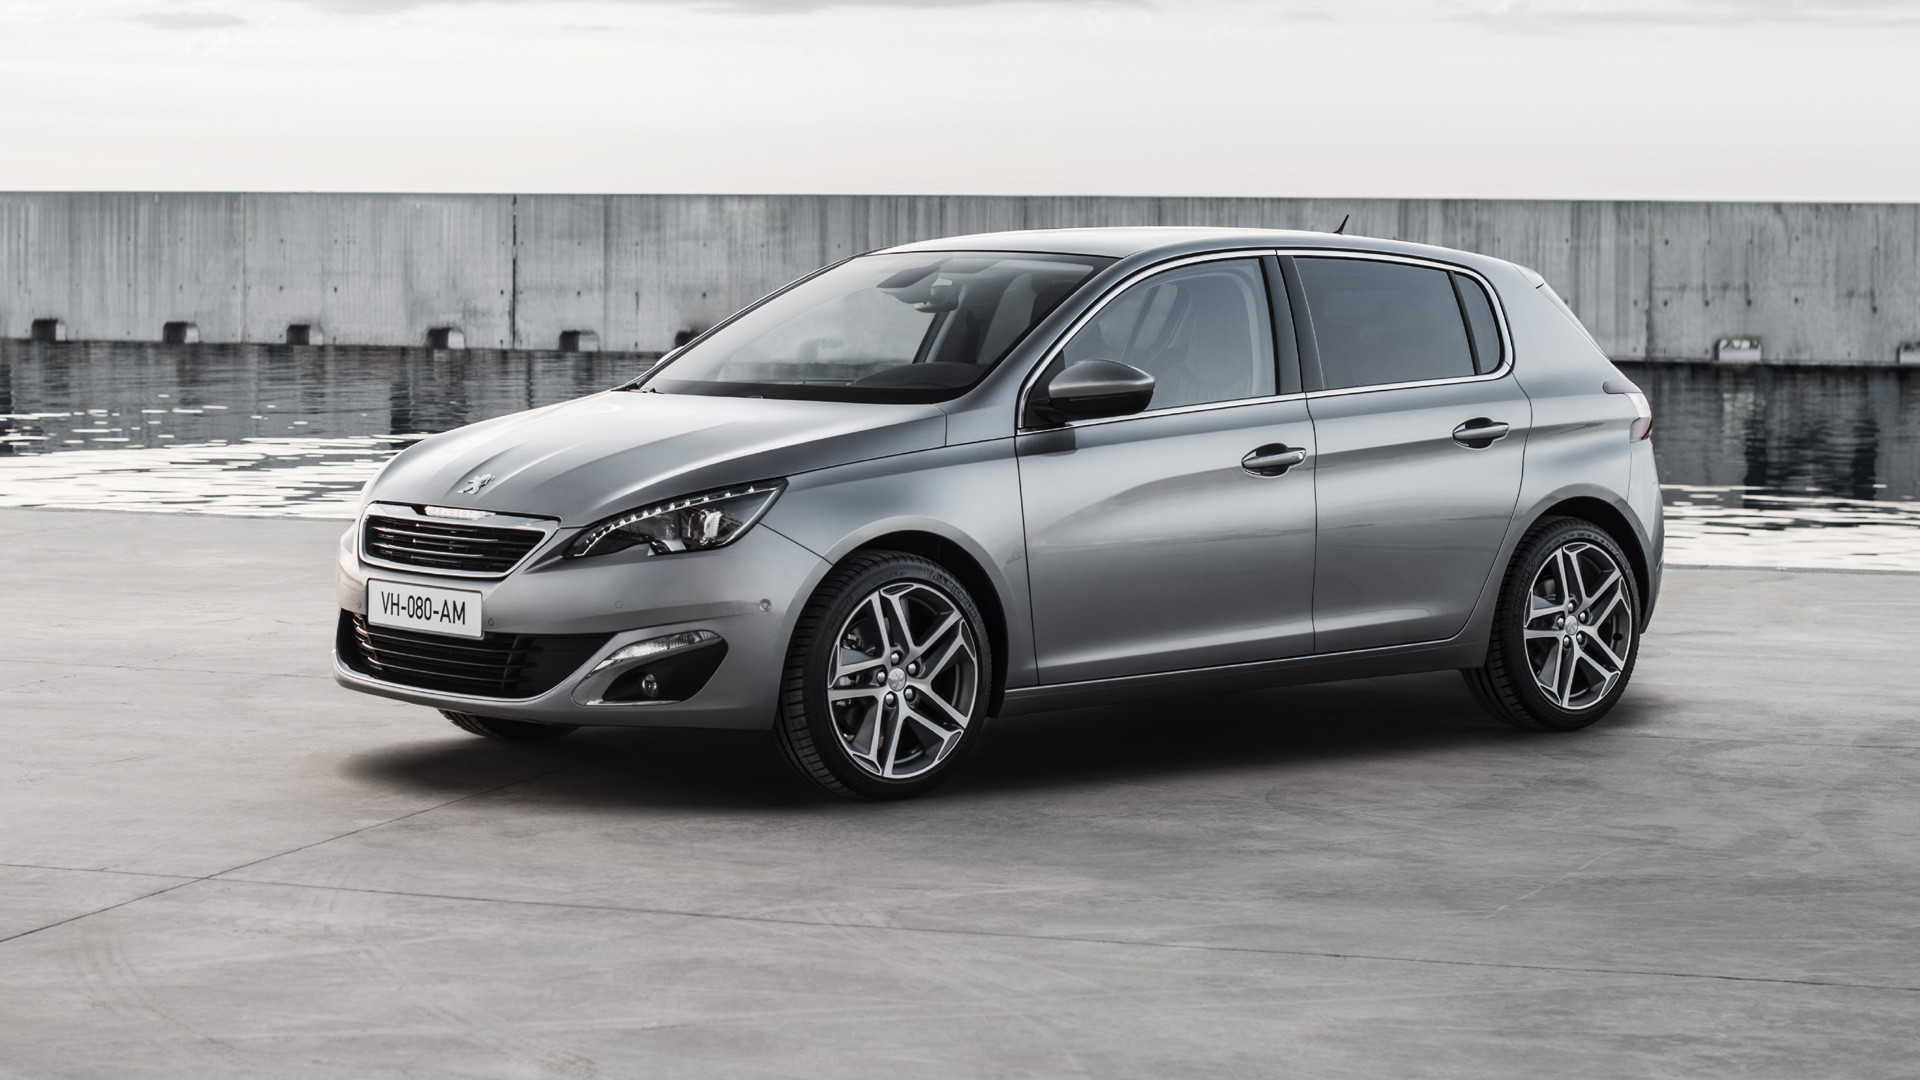 INTRODUCING THE NEW PEUGEOT 308